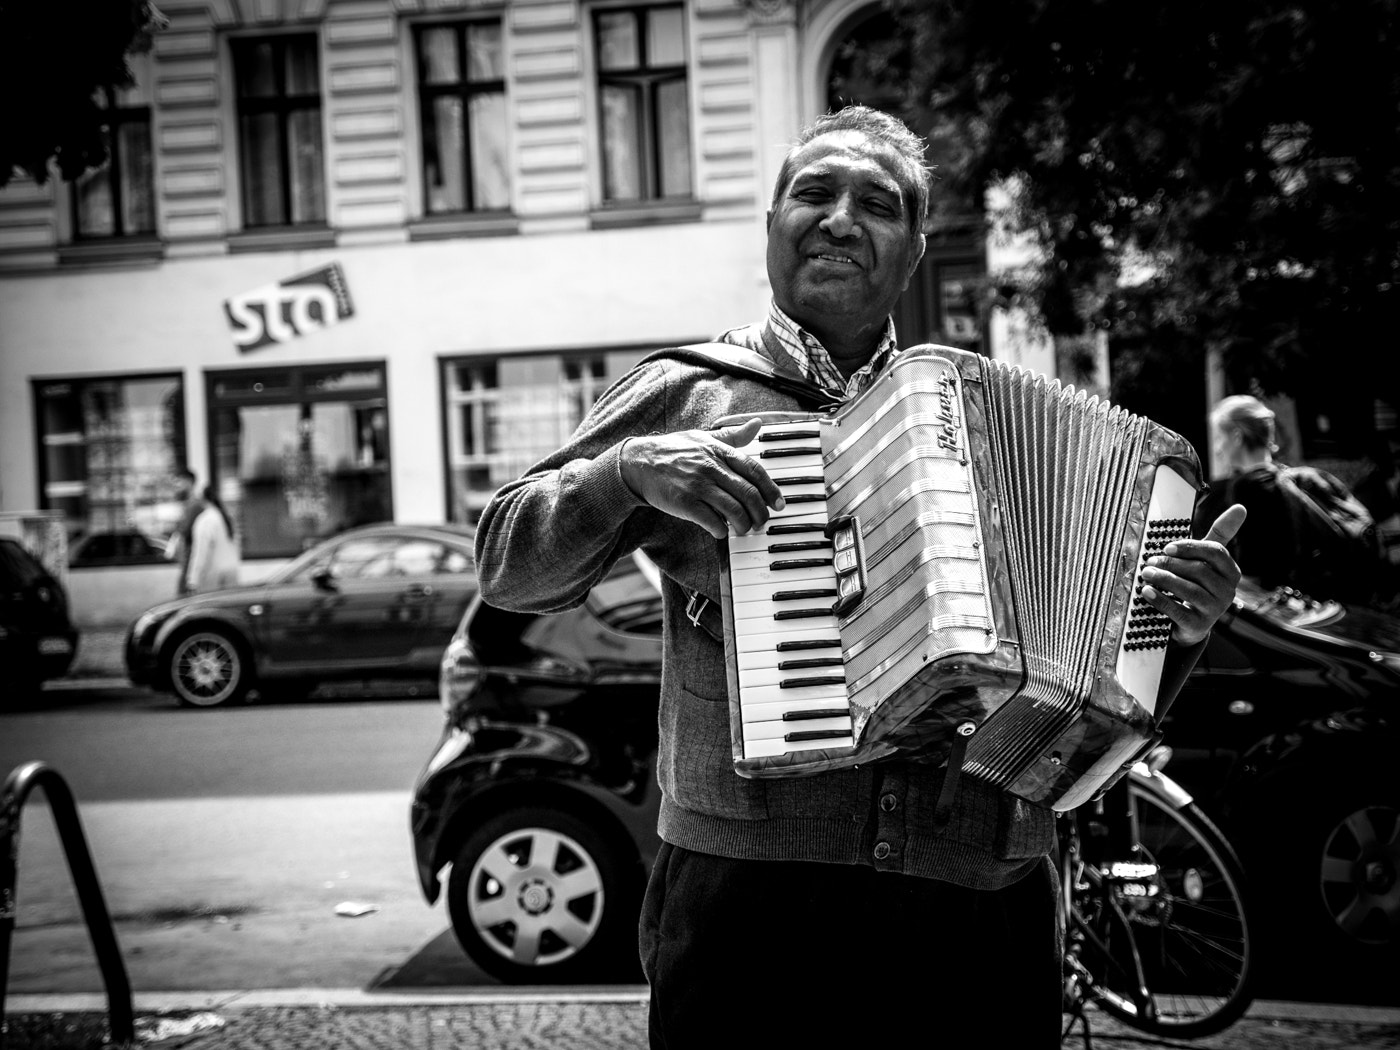 Photograph street music by phil outside on 500px